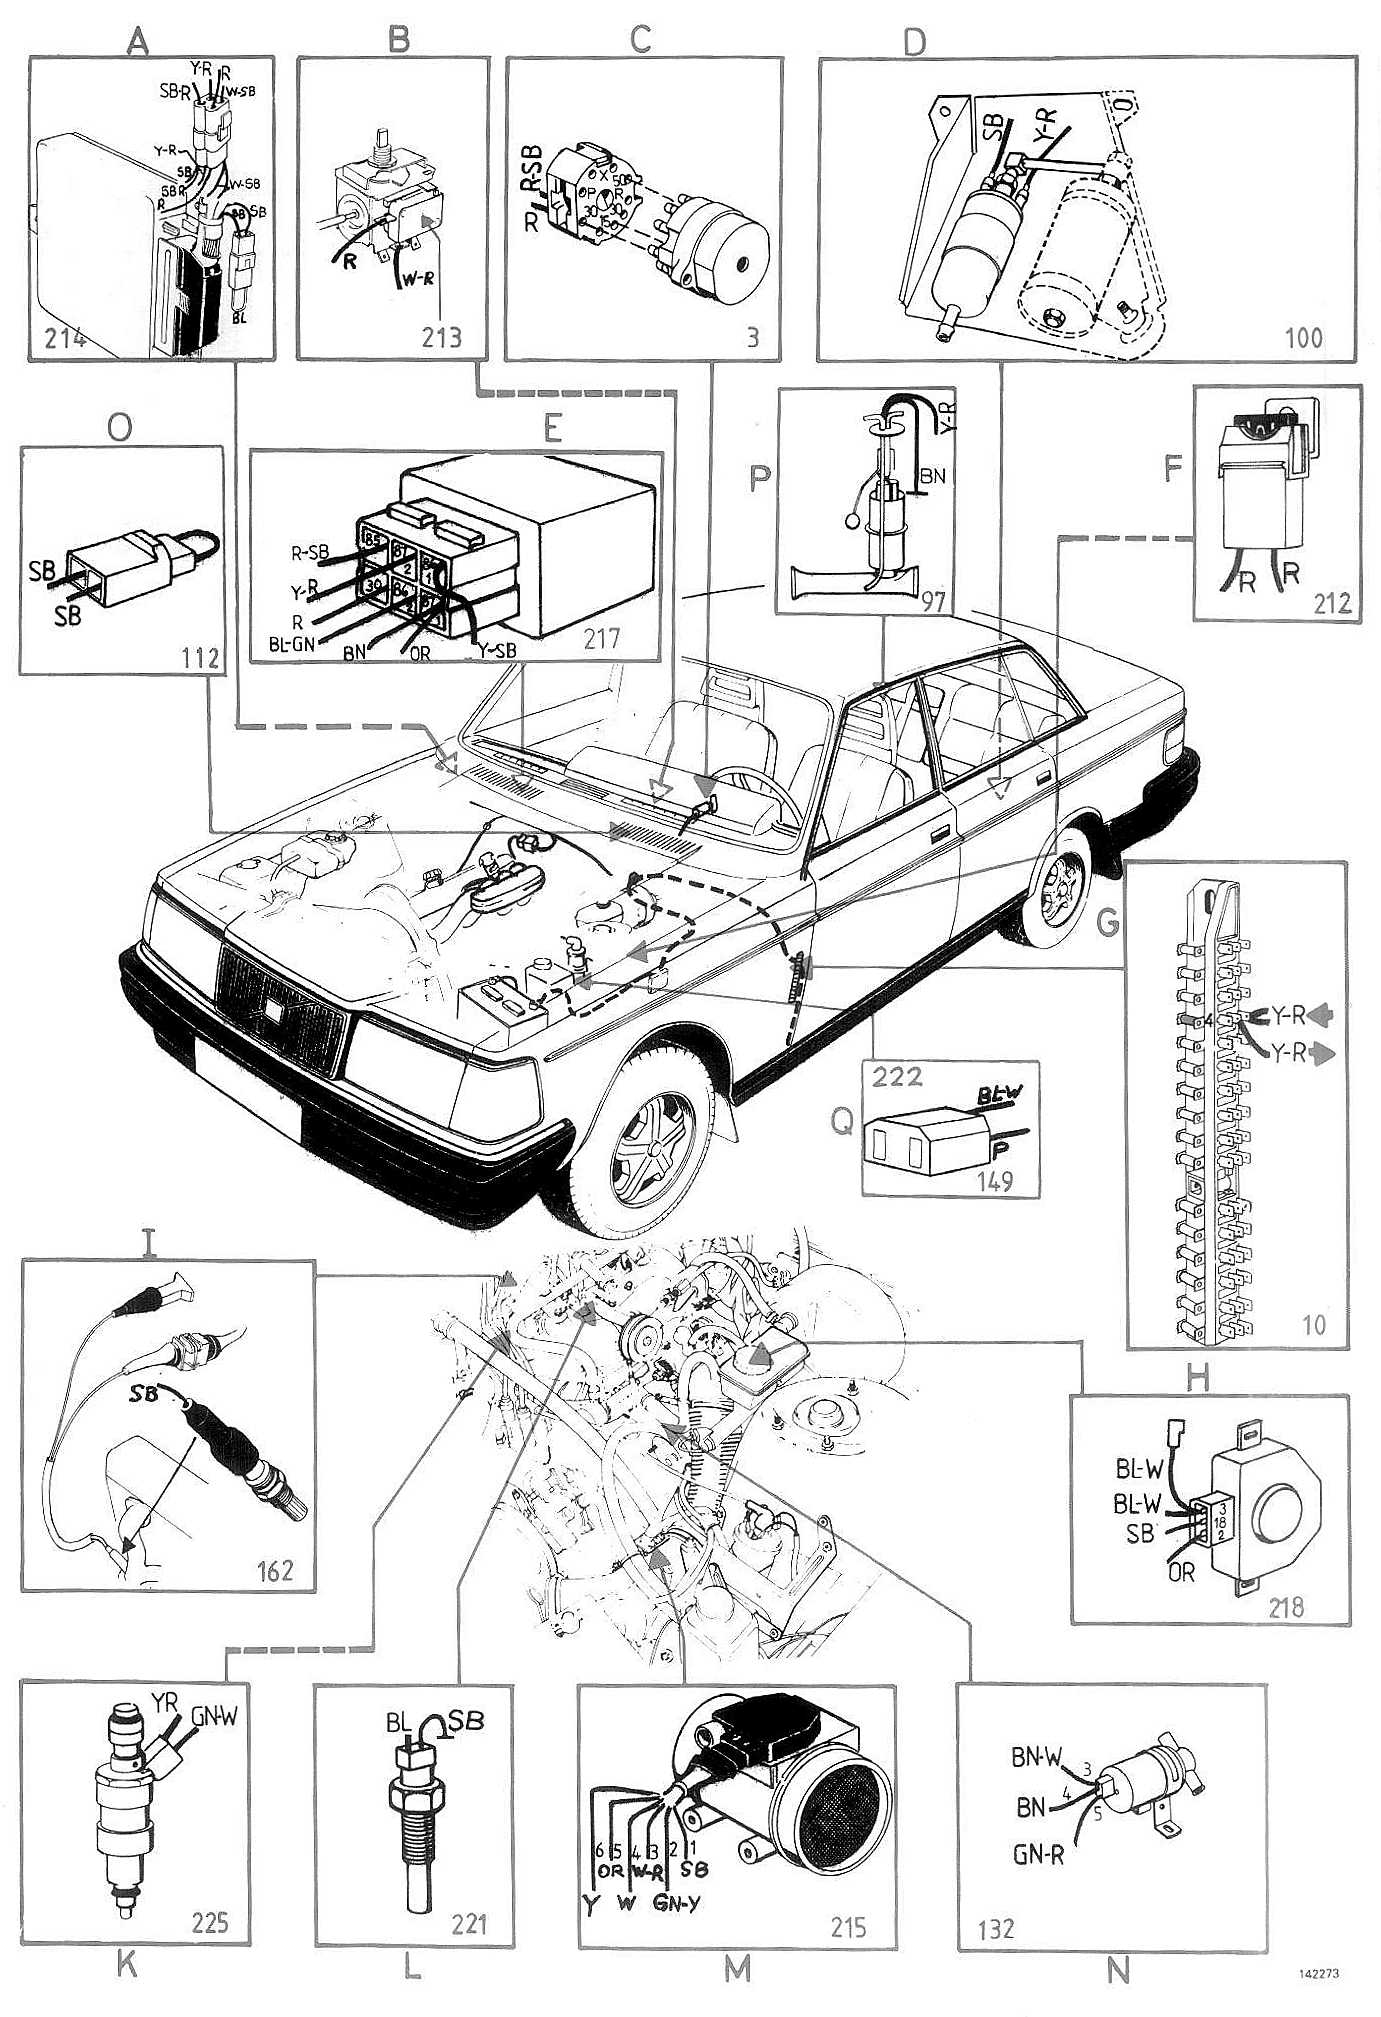 2010 01 09_002015_pump_relay i have a 1987 volvo 240 dl & the car will not start i have volvo 240 fuel pump relay wiring diagram at readyjetset.co